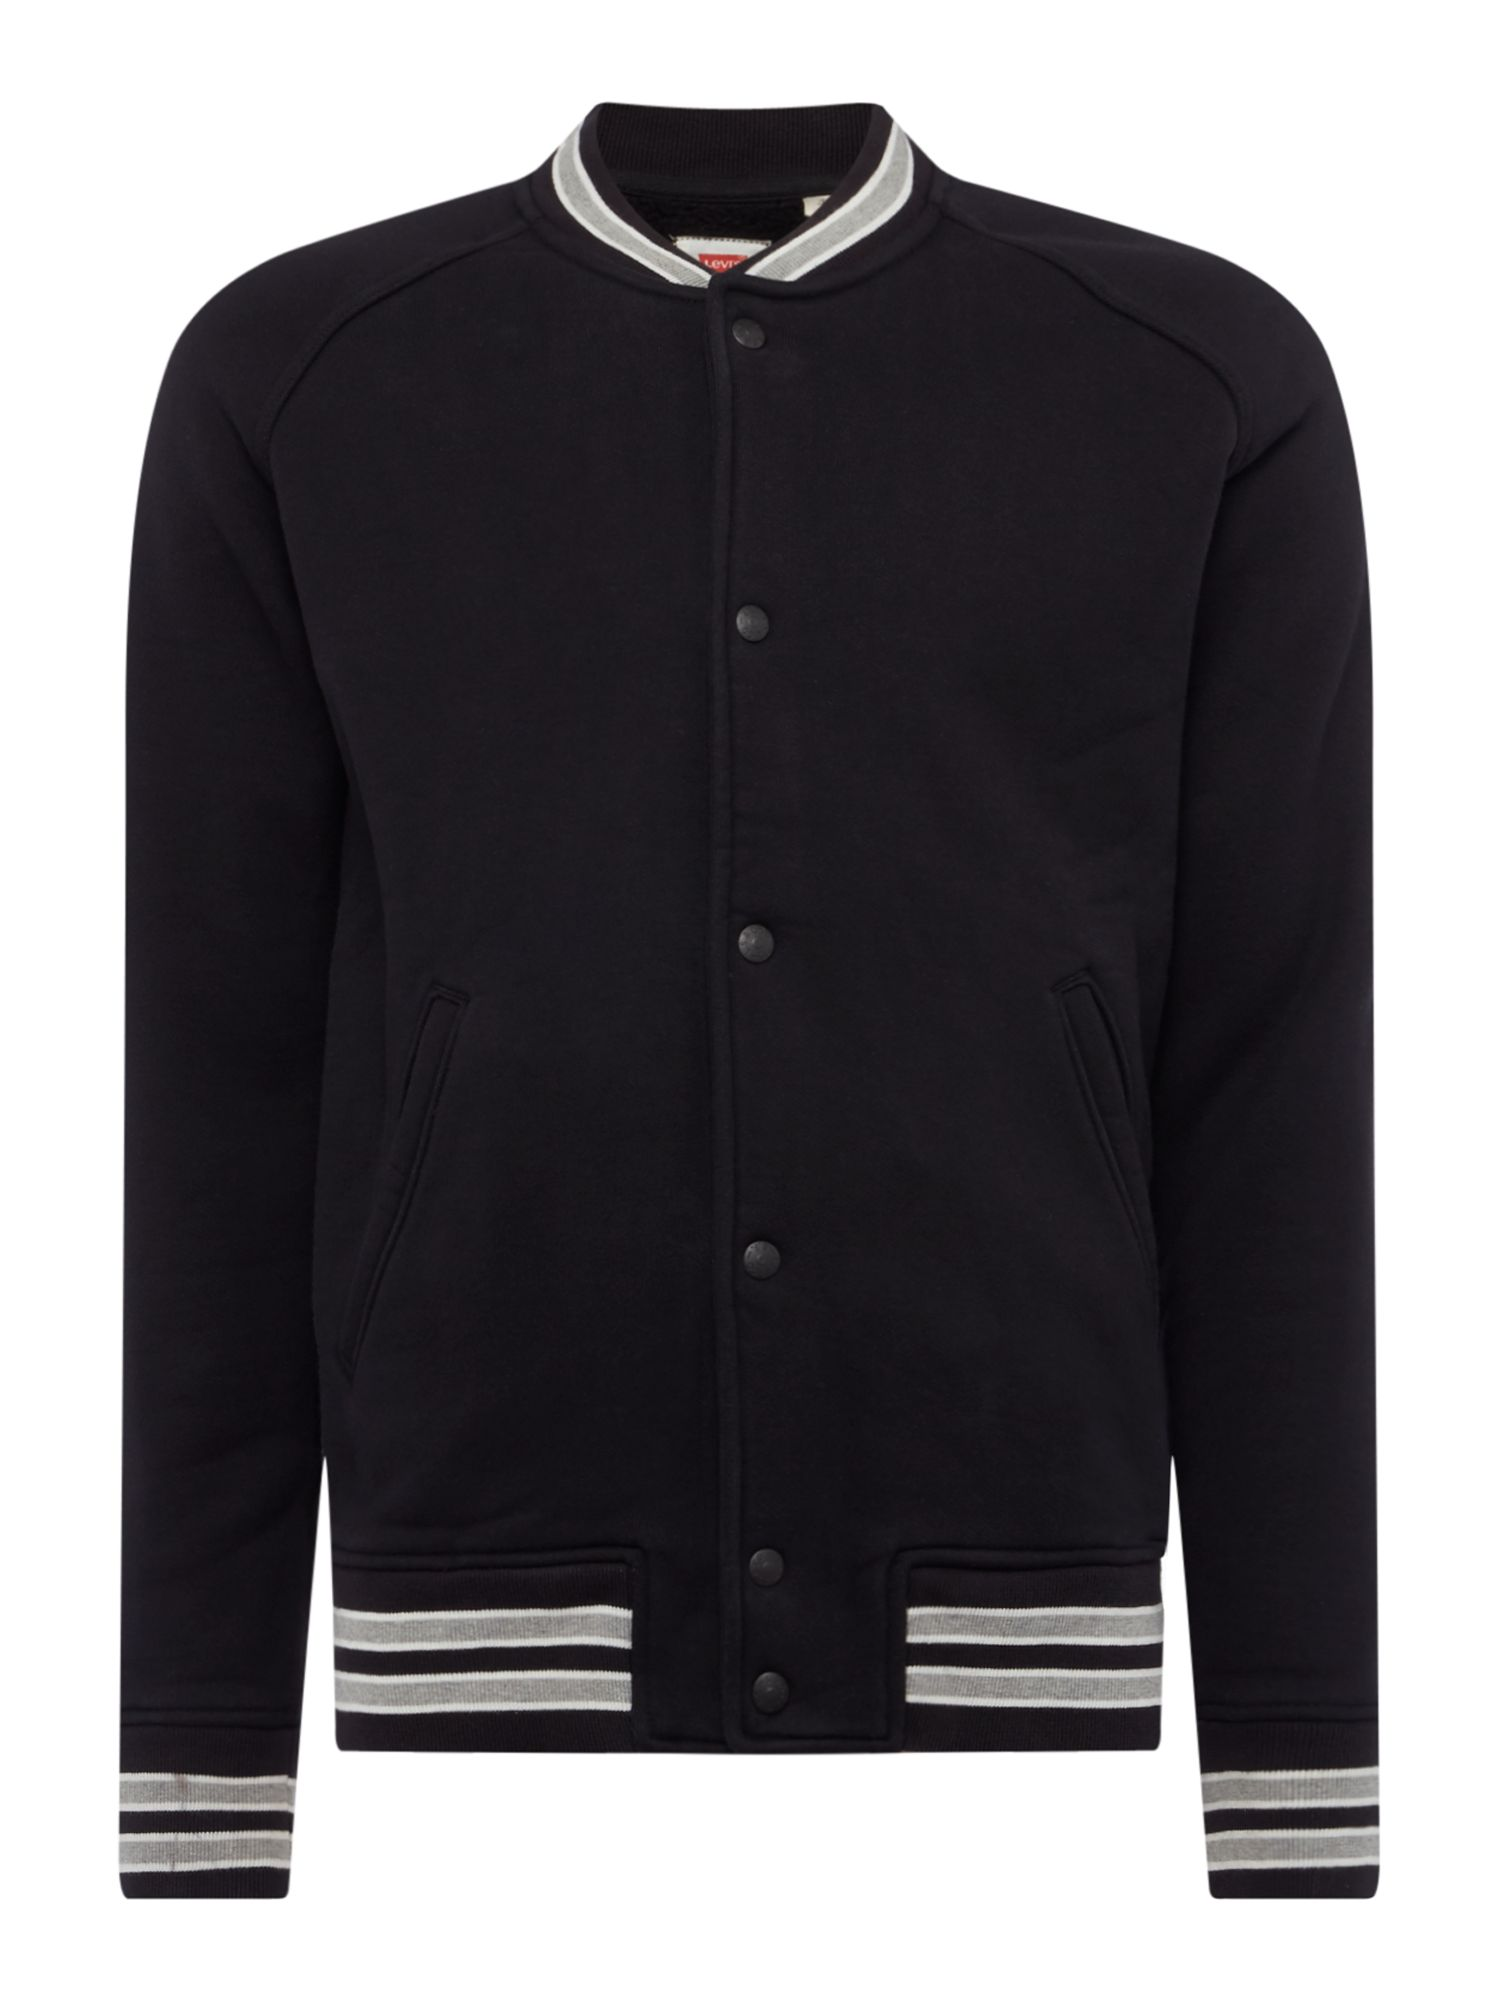 Men's Levi's Jersey Bomber Jacket, Black